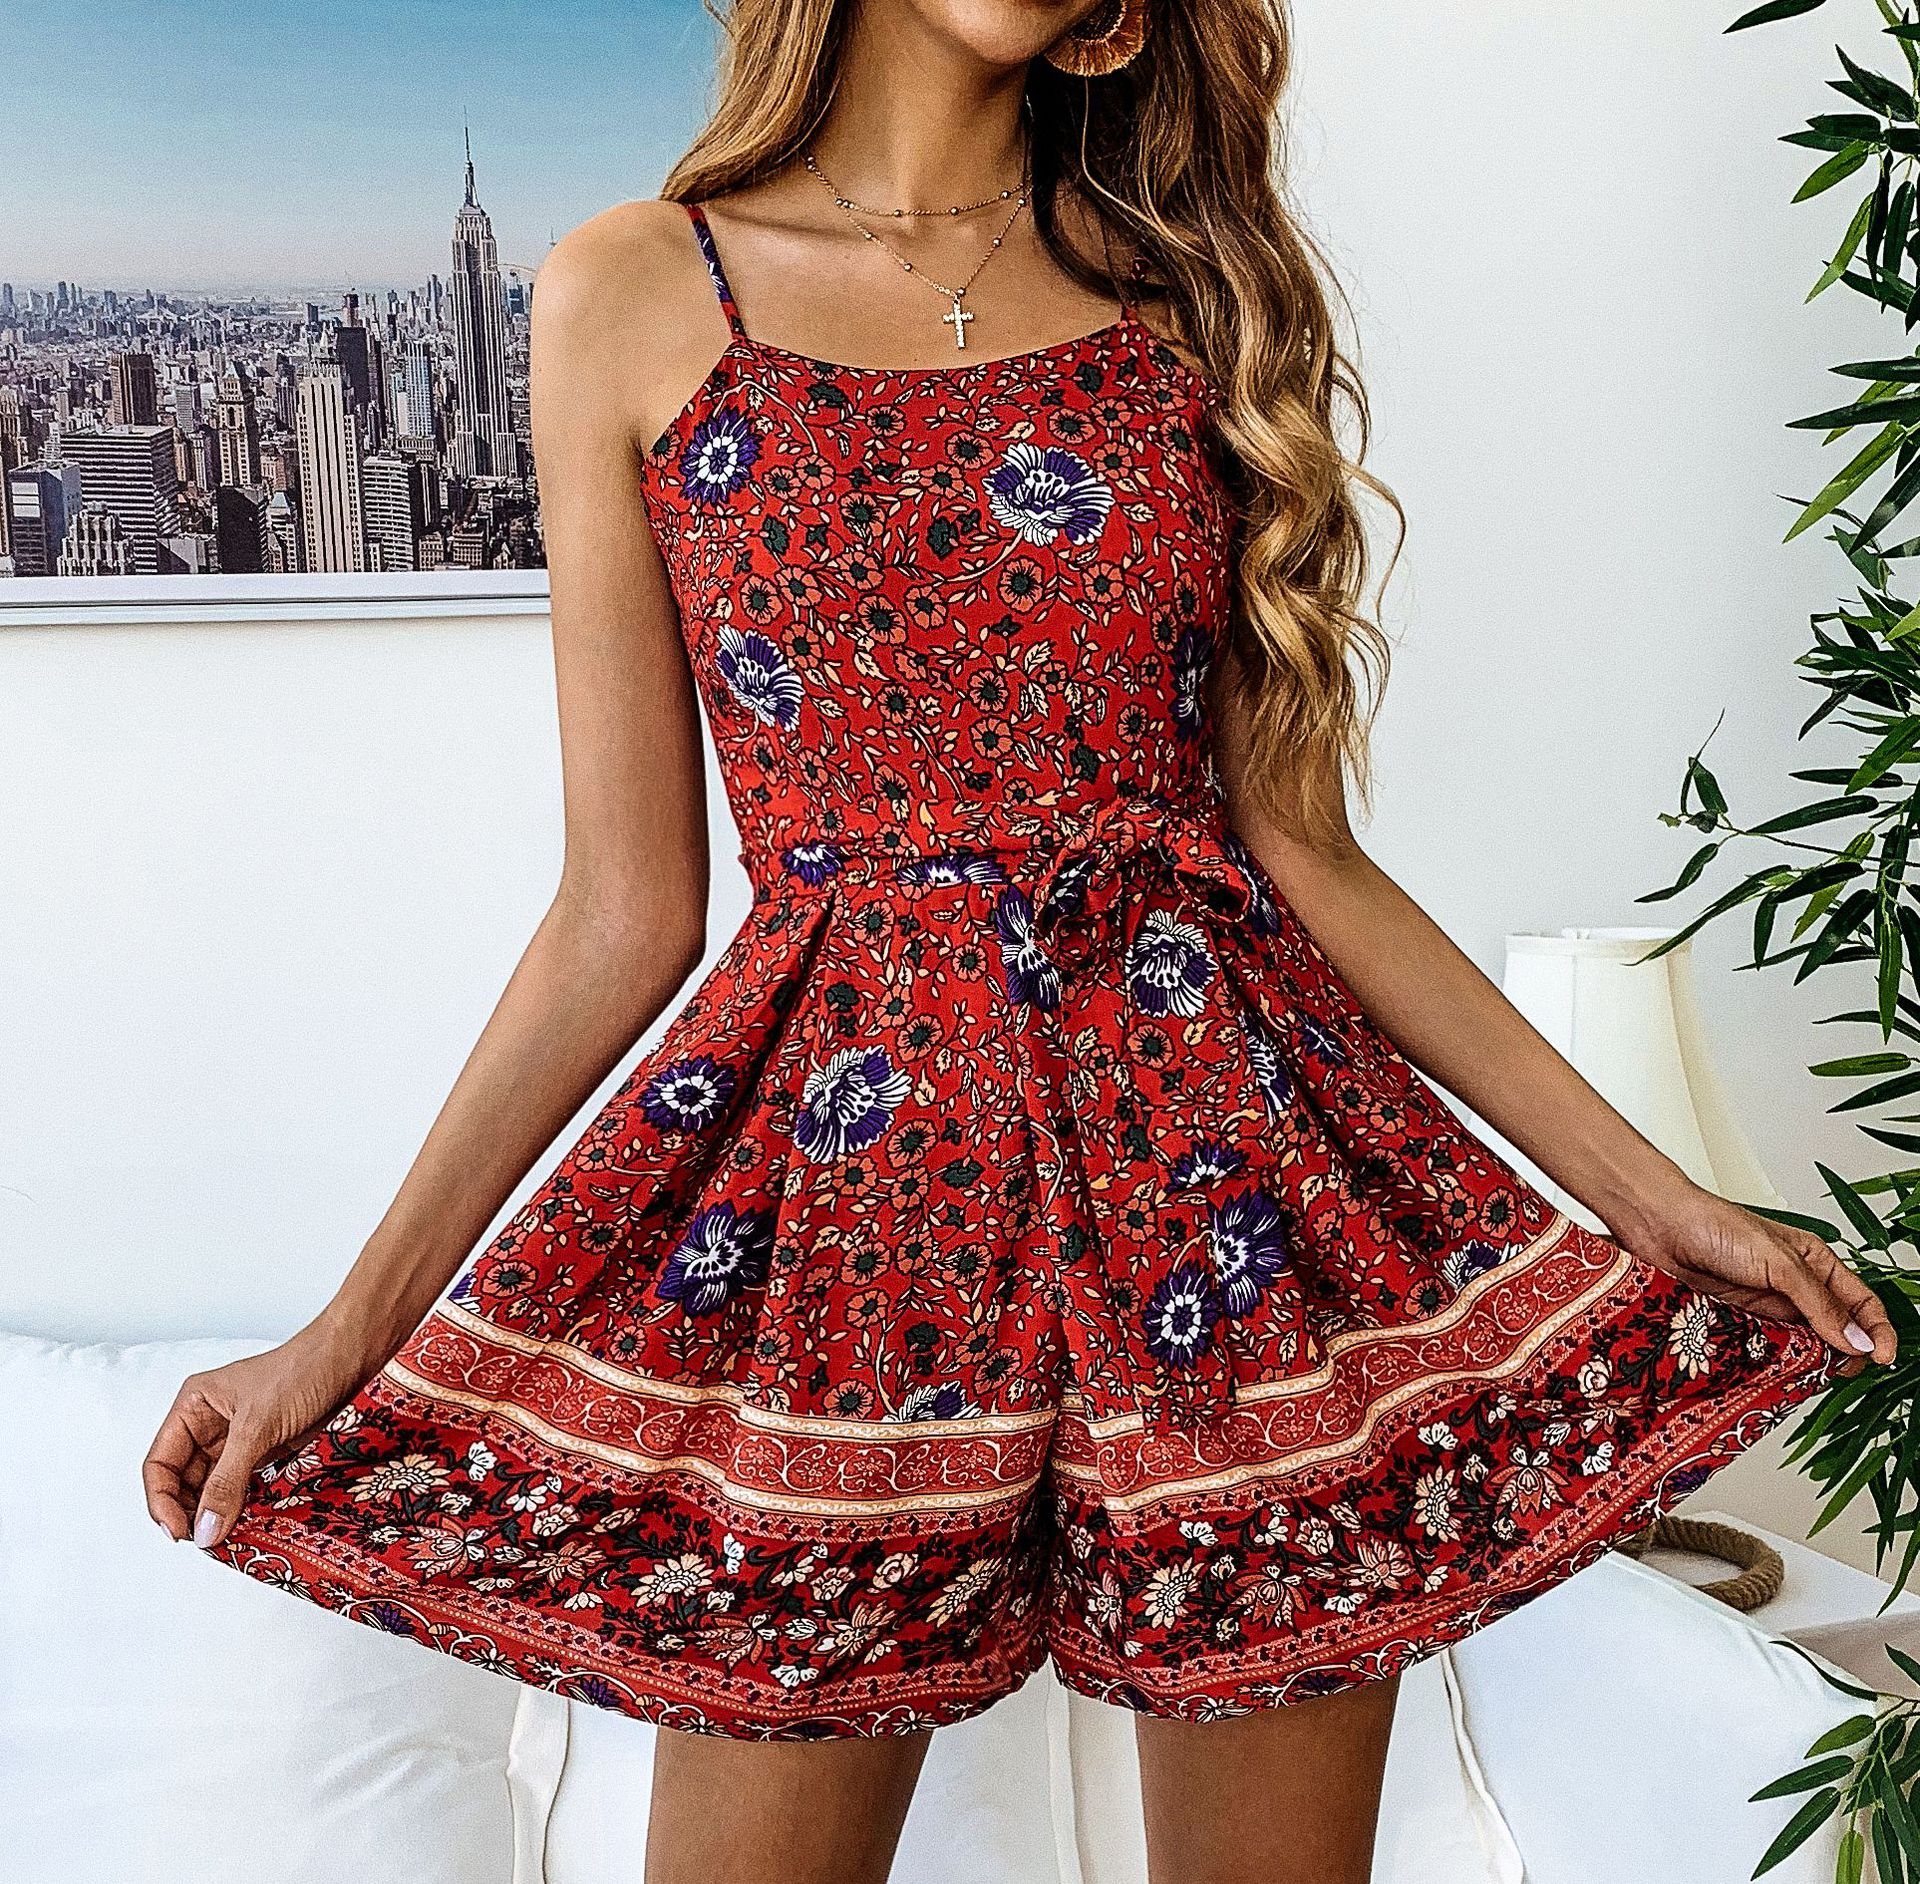 ZOGAA 2019 Summer Floral Printed Women Jumpsuit Sexy Spaghetti Strap Above Knee Jumpsuits Elegant Casual Beach Wide Legs Skirt in Rompers from Women 39 s Clothing